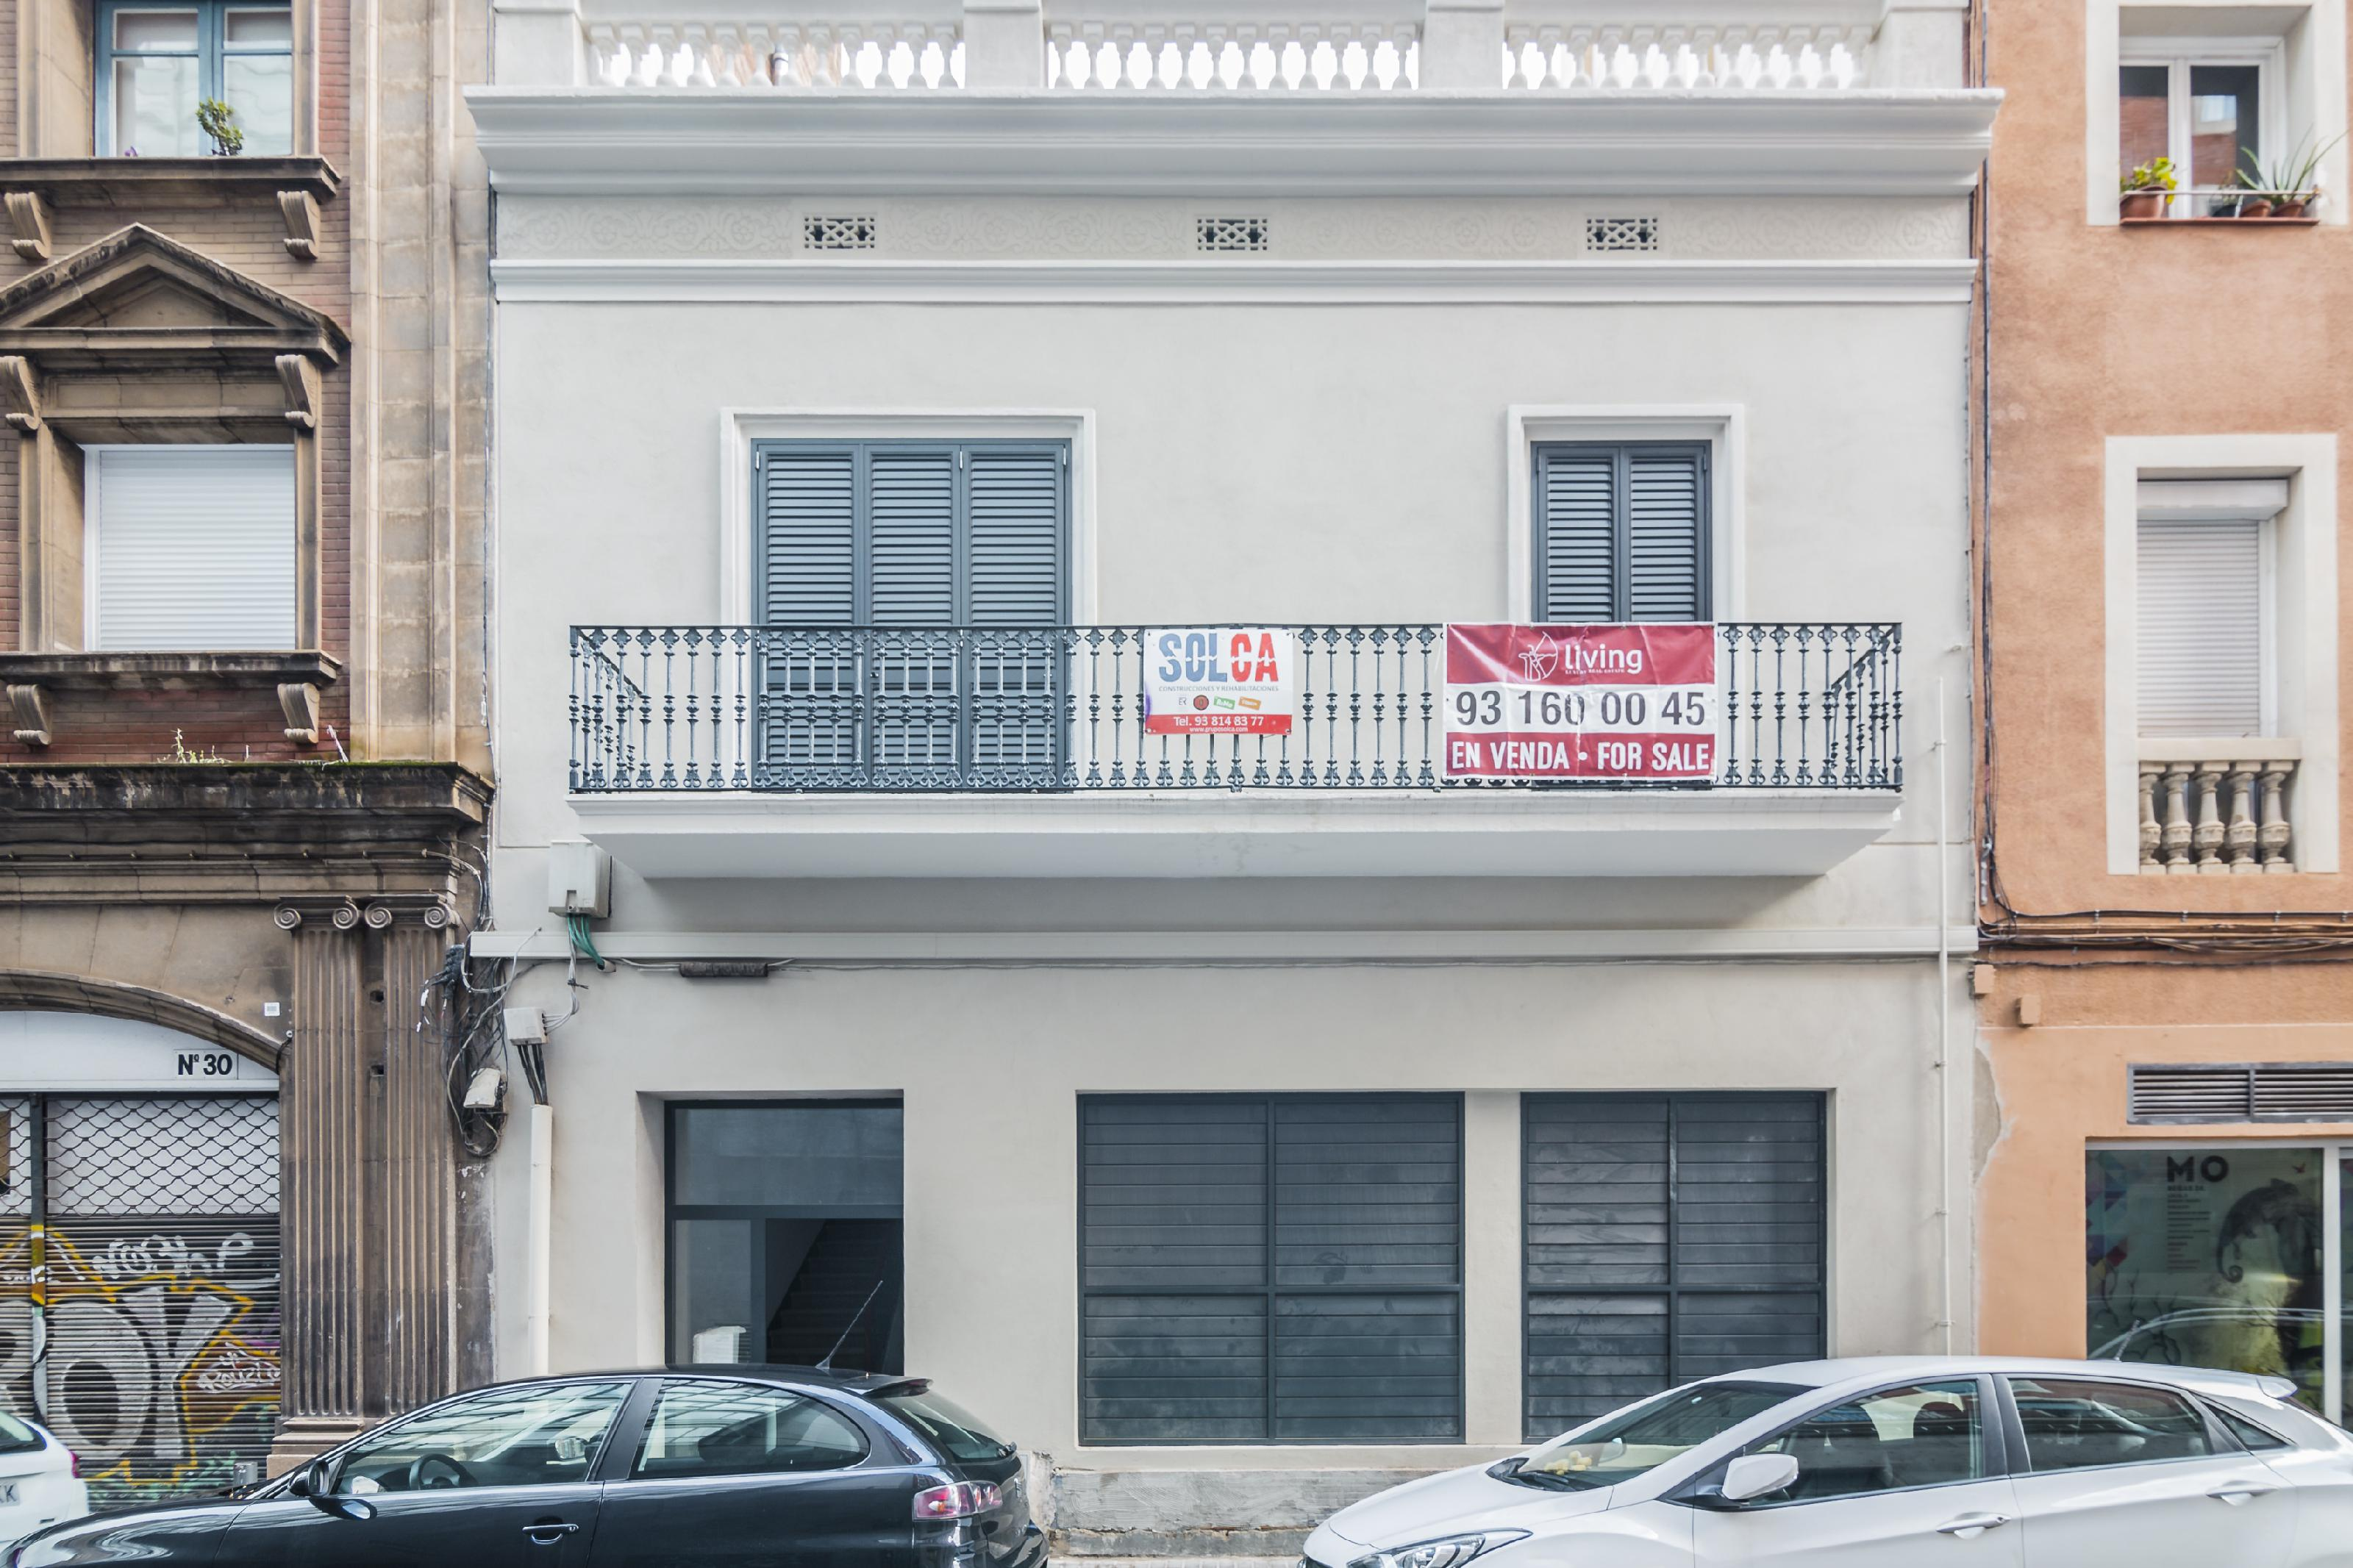 220653 Penthouse for sale in Sarrià-Sant Gervasi, Sant Gervasi-Galvany 18